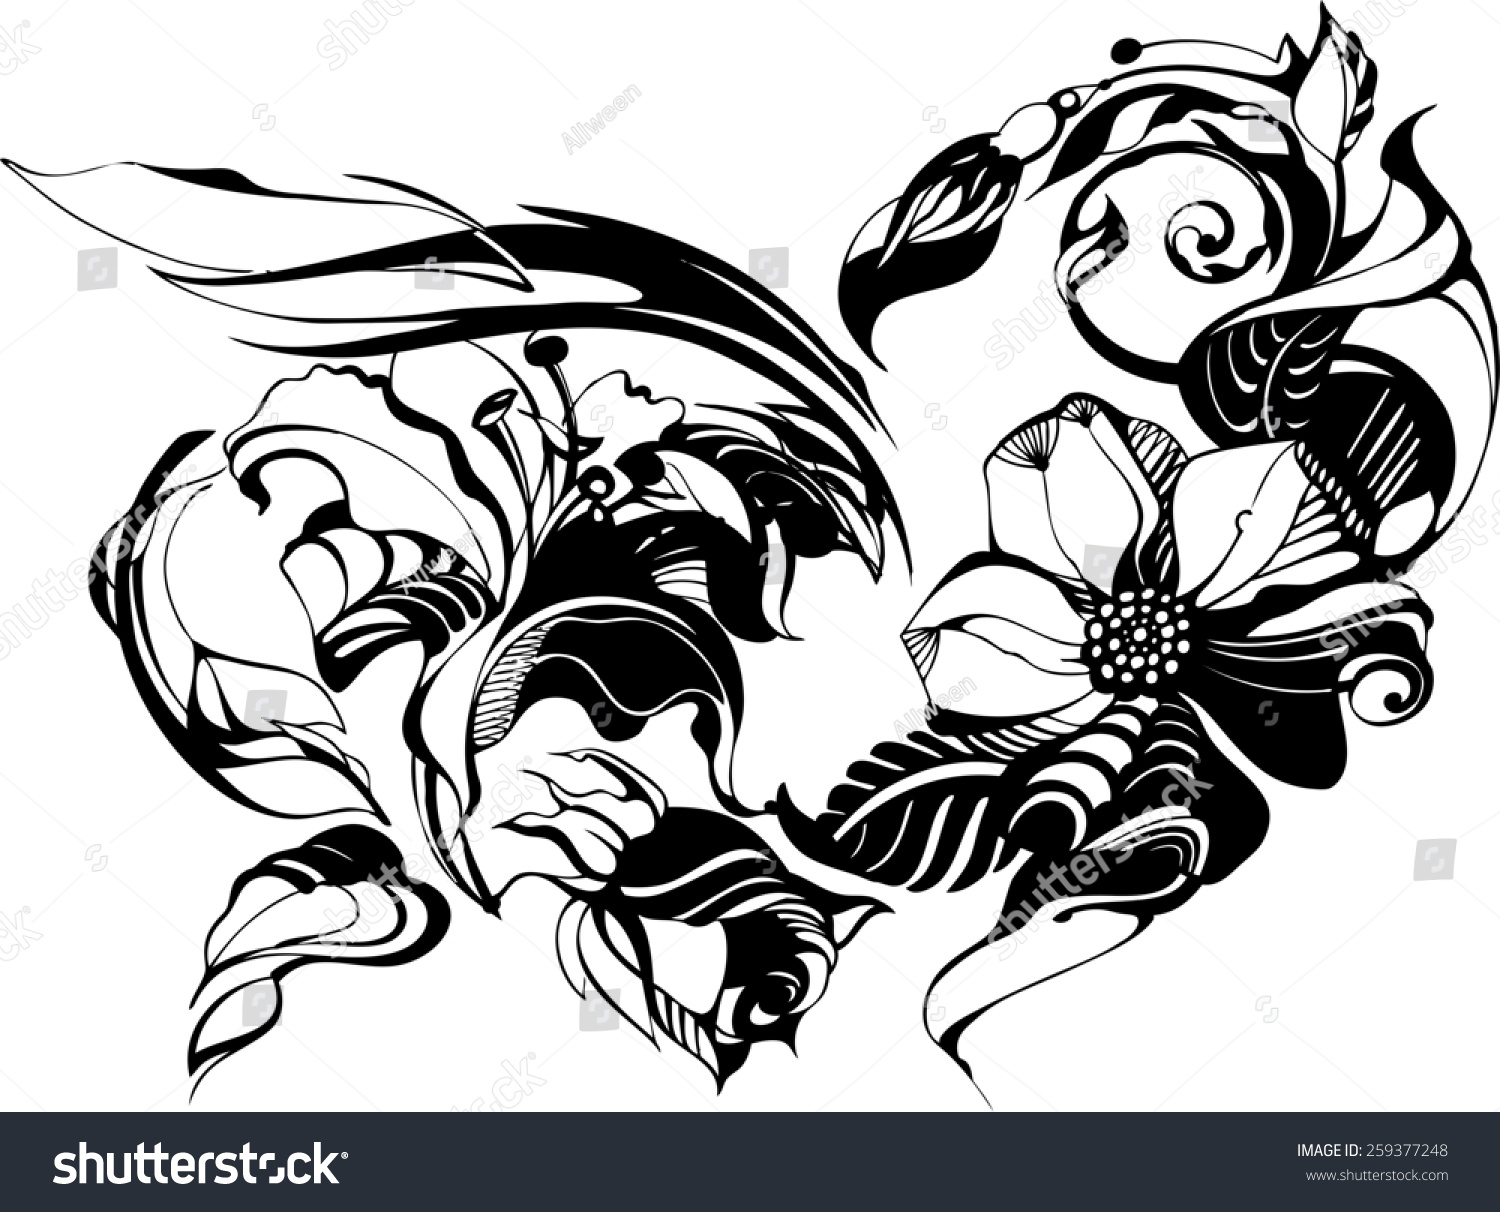 Drawing Smooth Lines Photo : Flowers drawn ink on white paper stock illustration